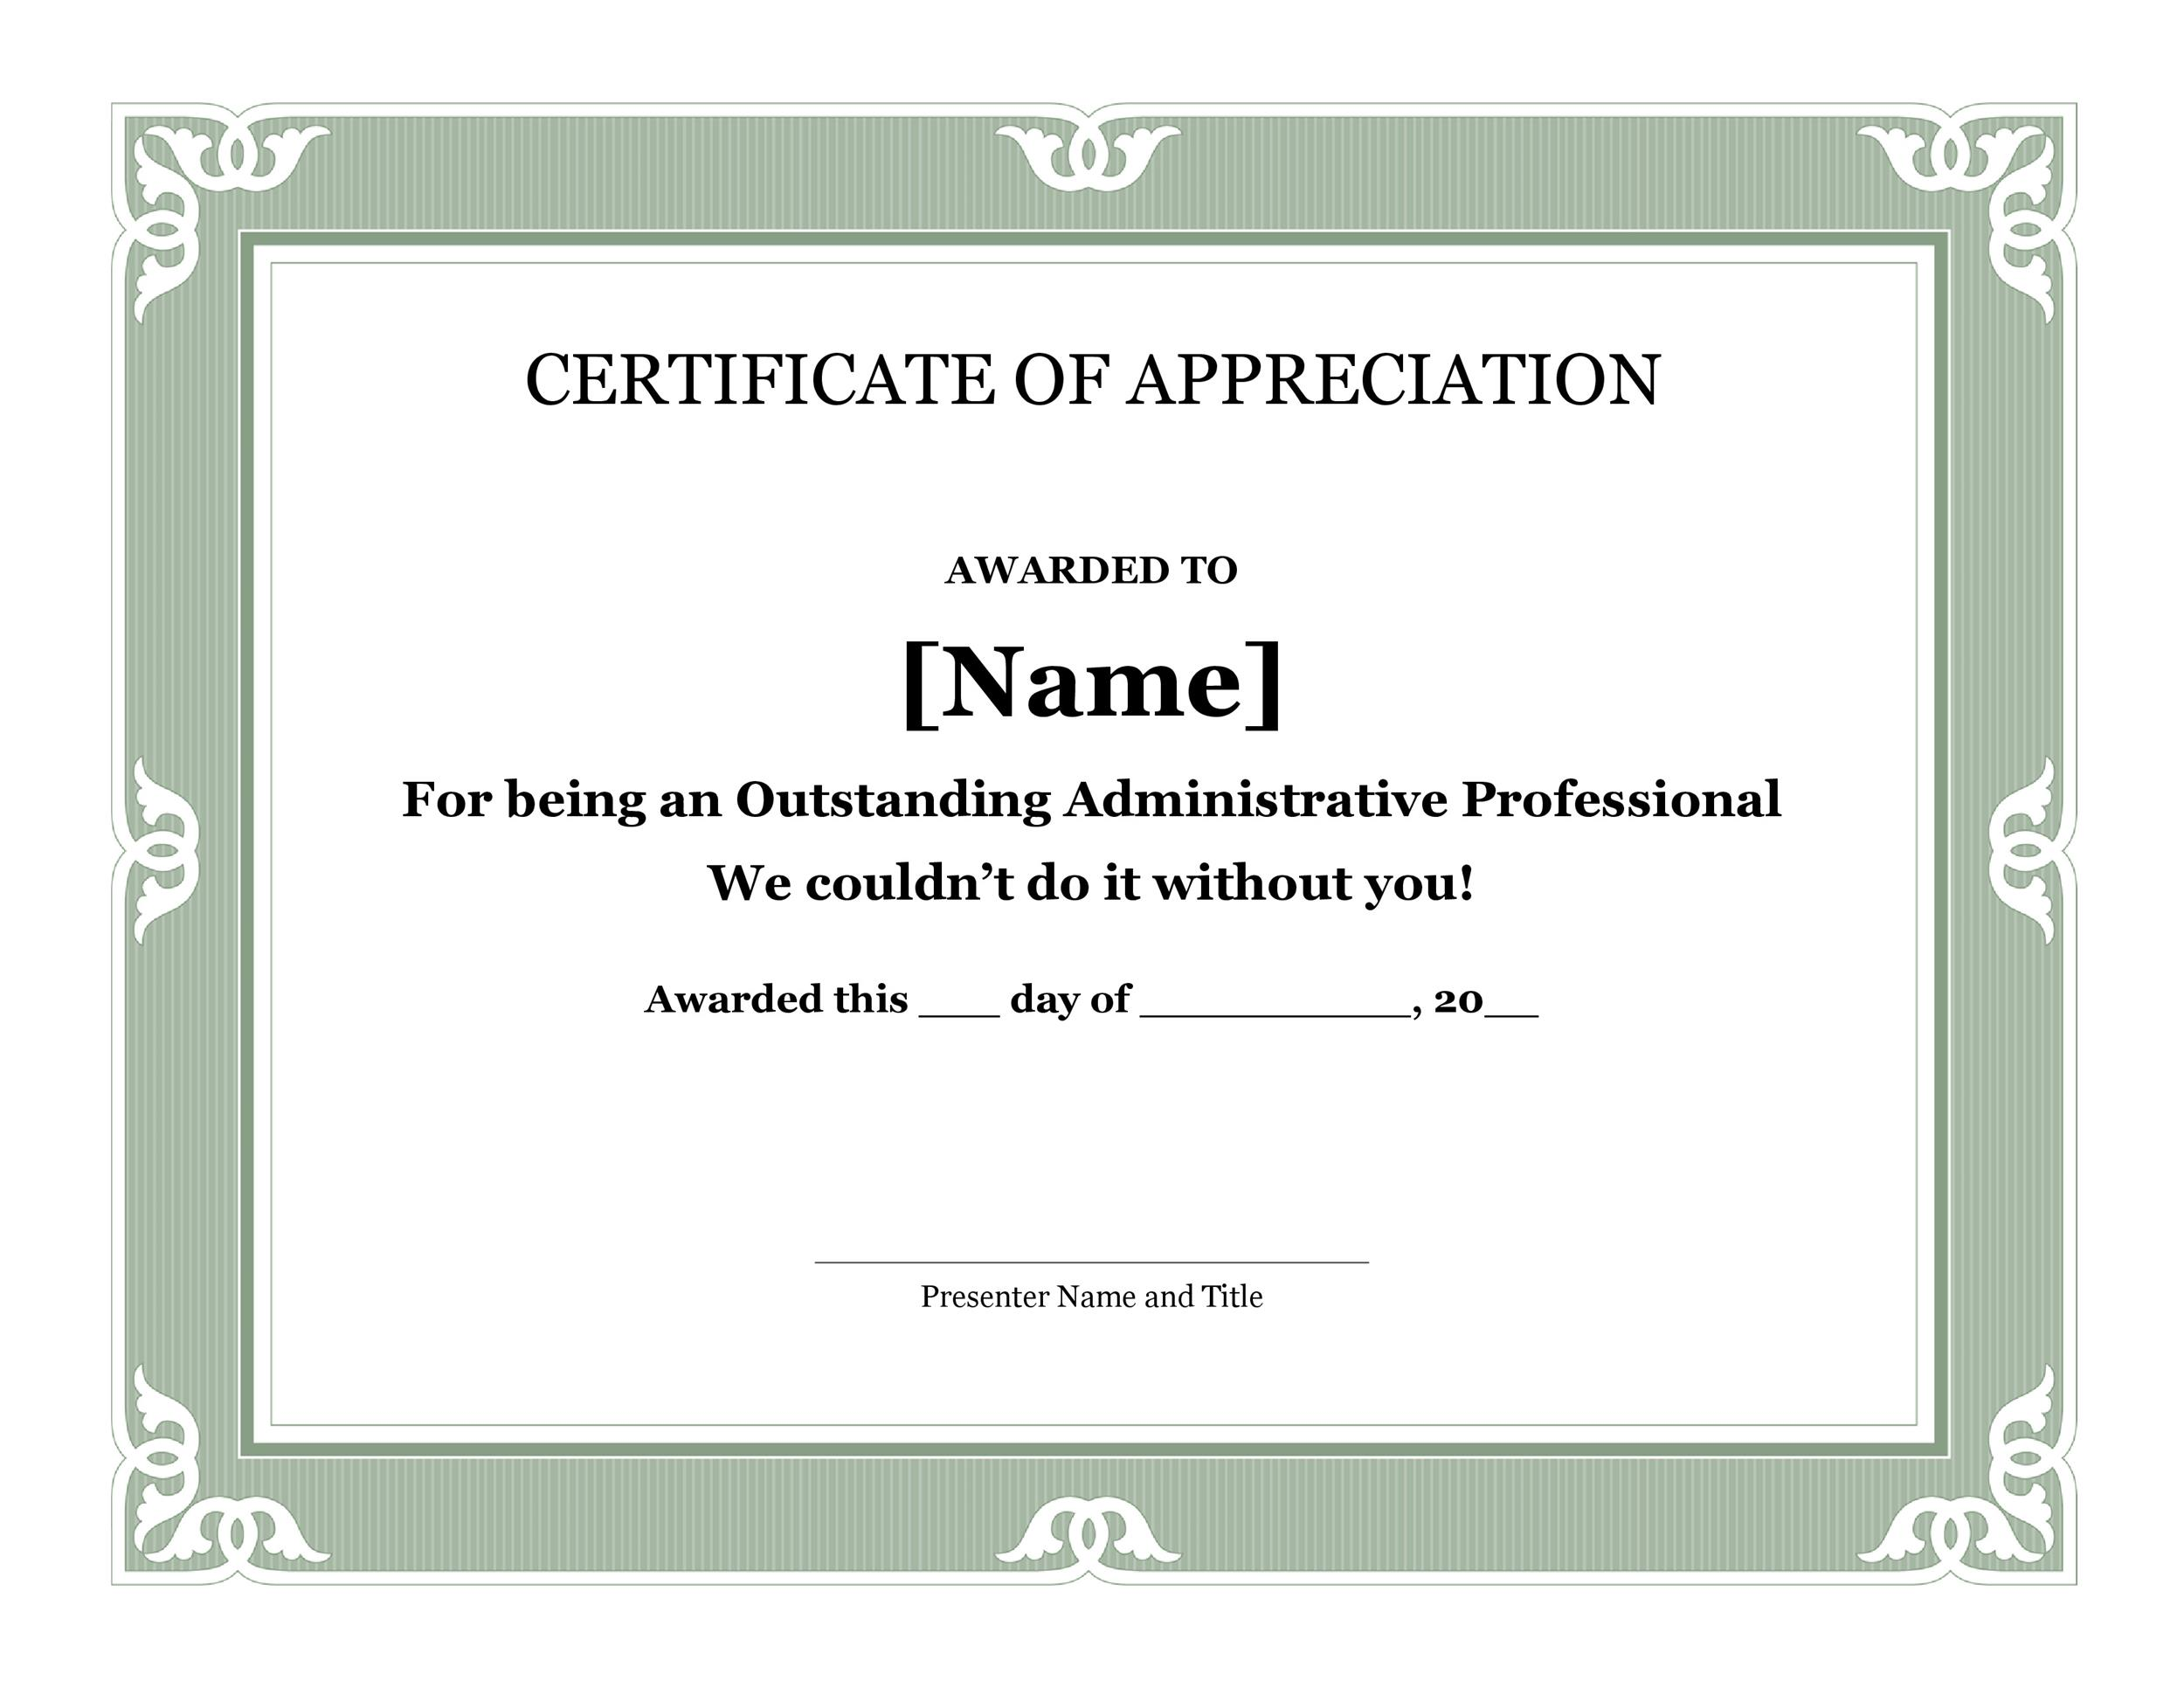 30 free certificate of appreciation templates and letters printable certificate of appreciation 18 yelopaper Image collections